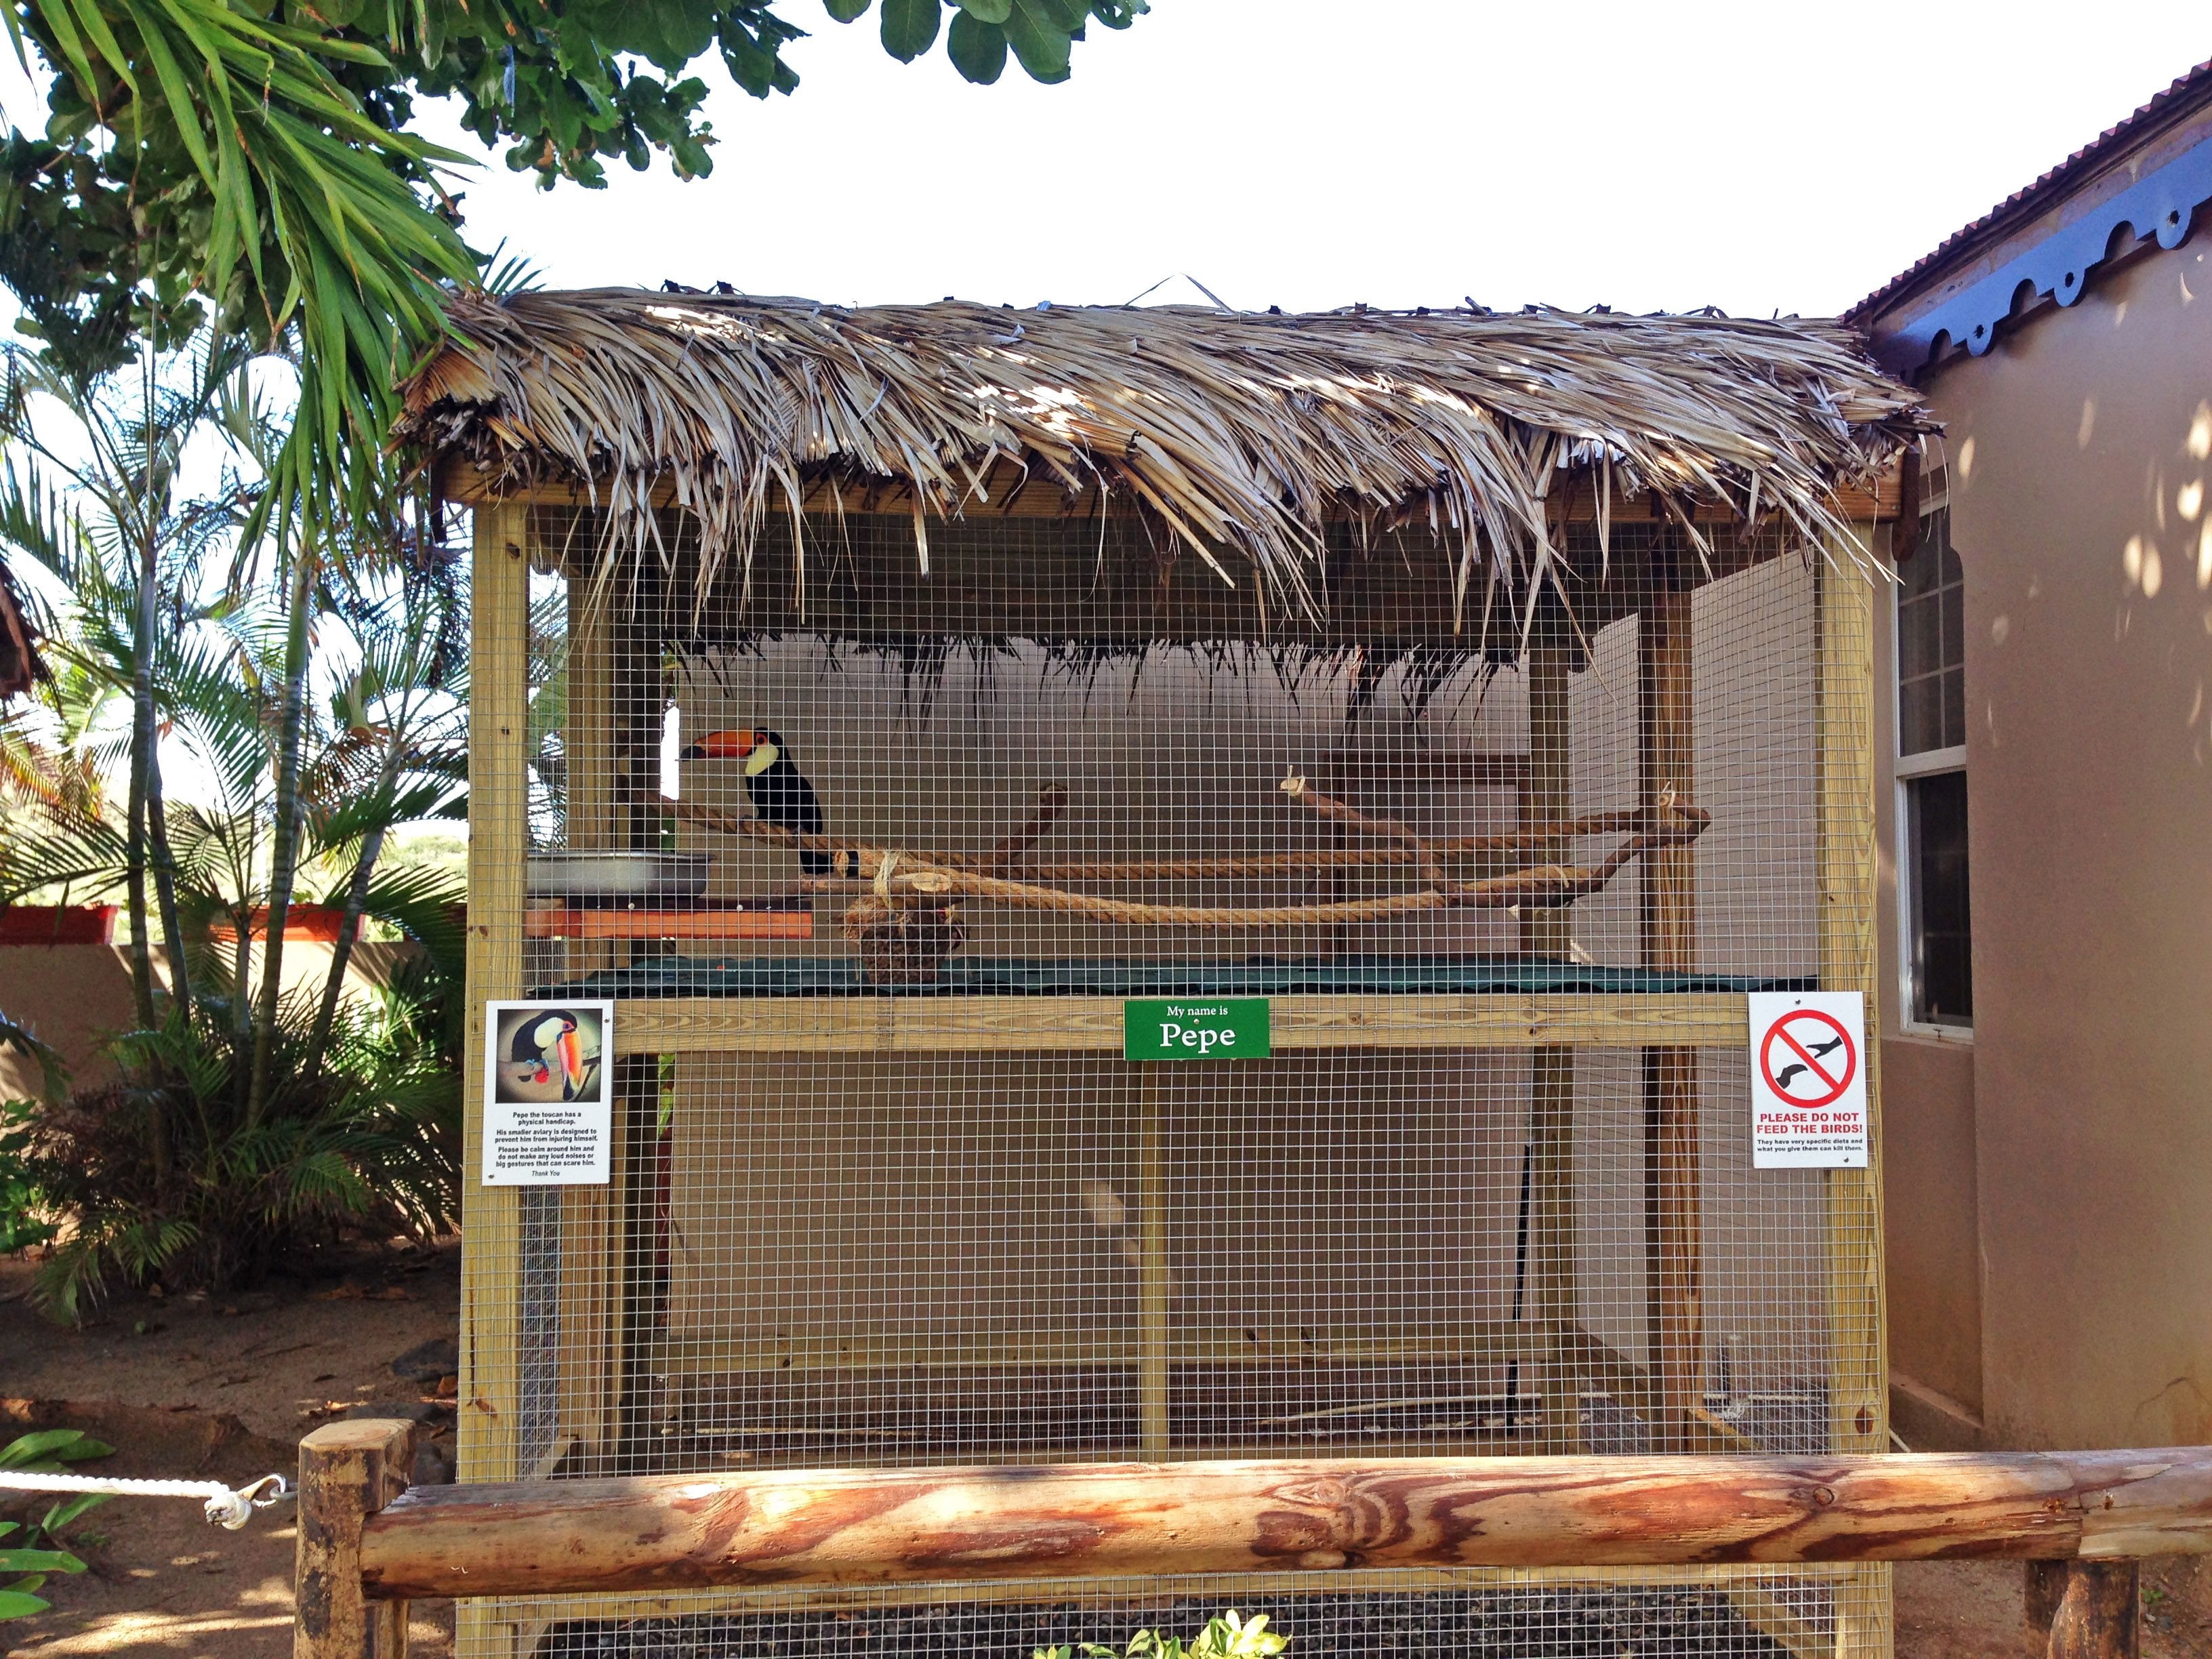 c5a5771ef outdoor parrot aviary plans. outdoor parrot aviary plans Bird Aviary,  Catio, Pet Birds, Coops, Bird Cages